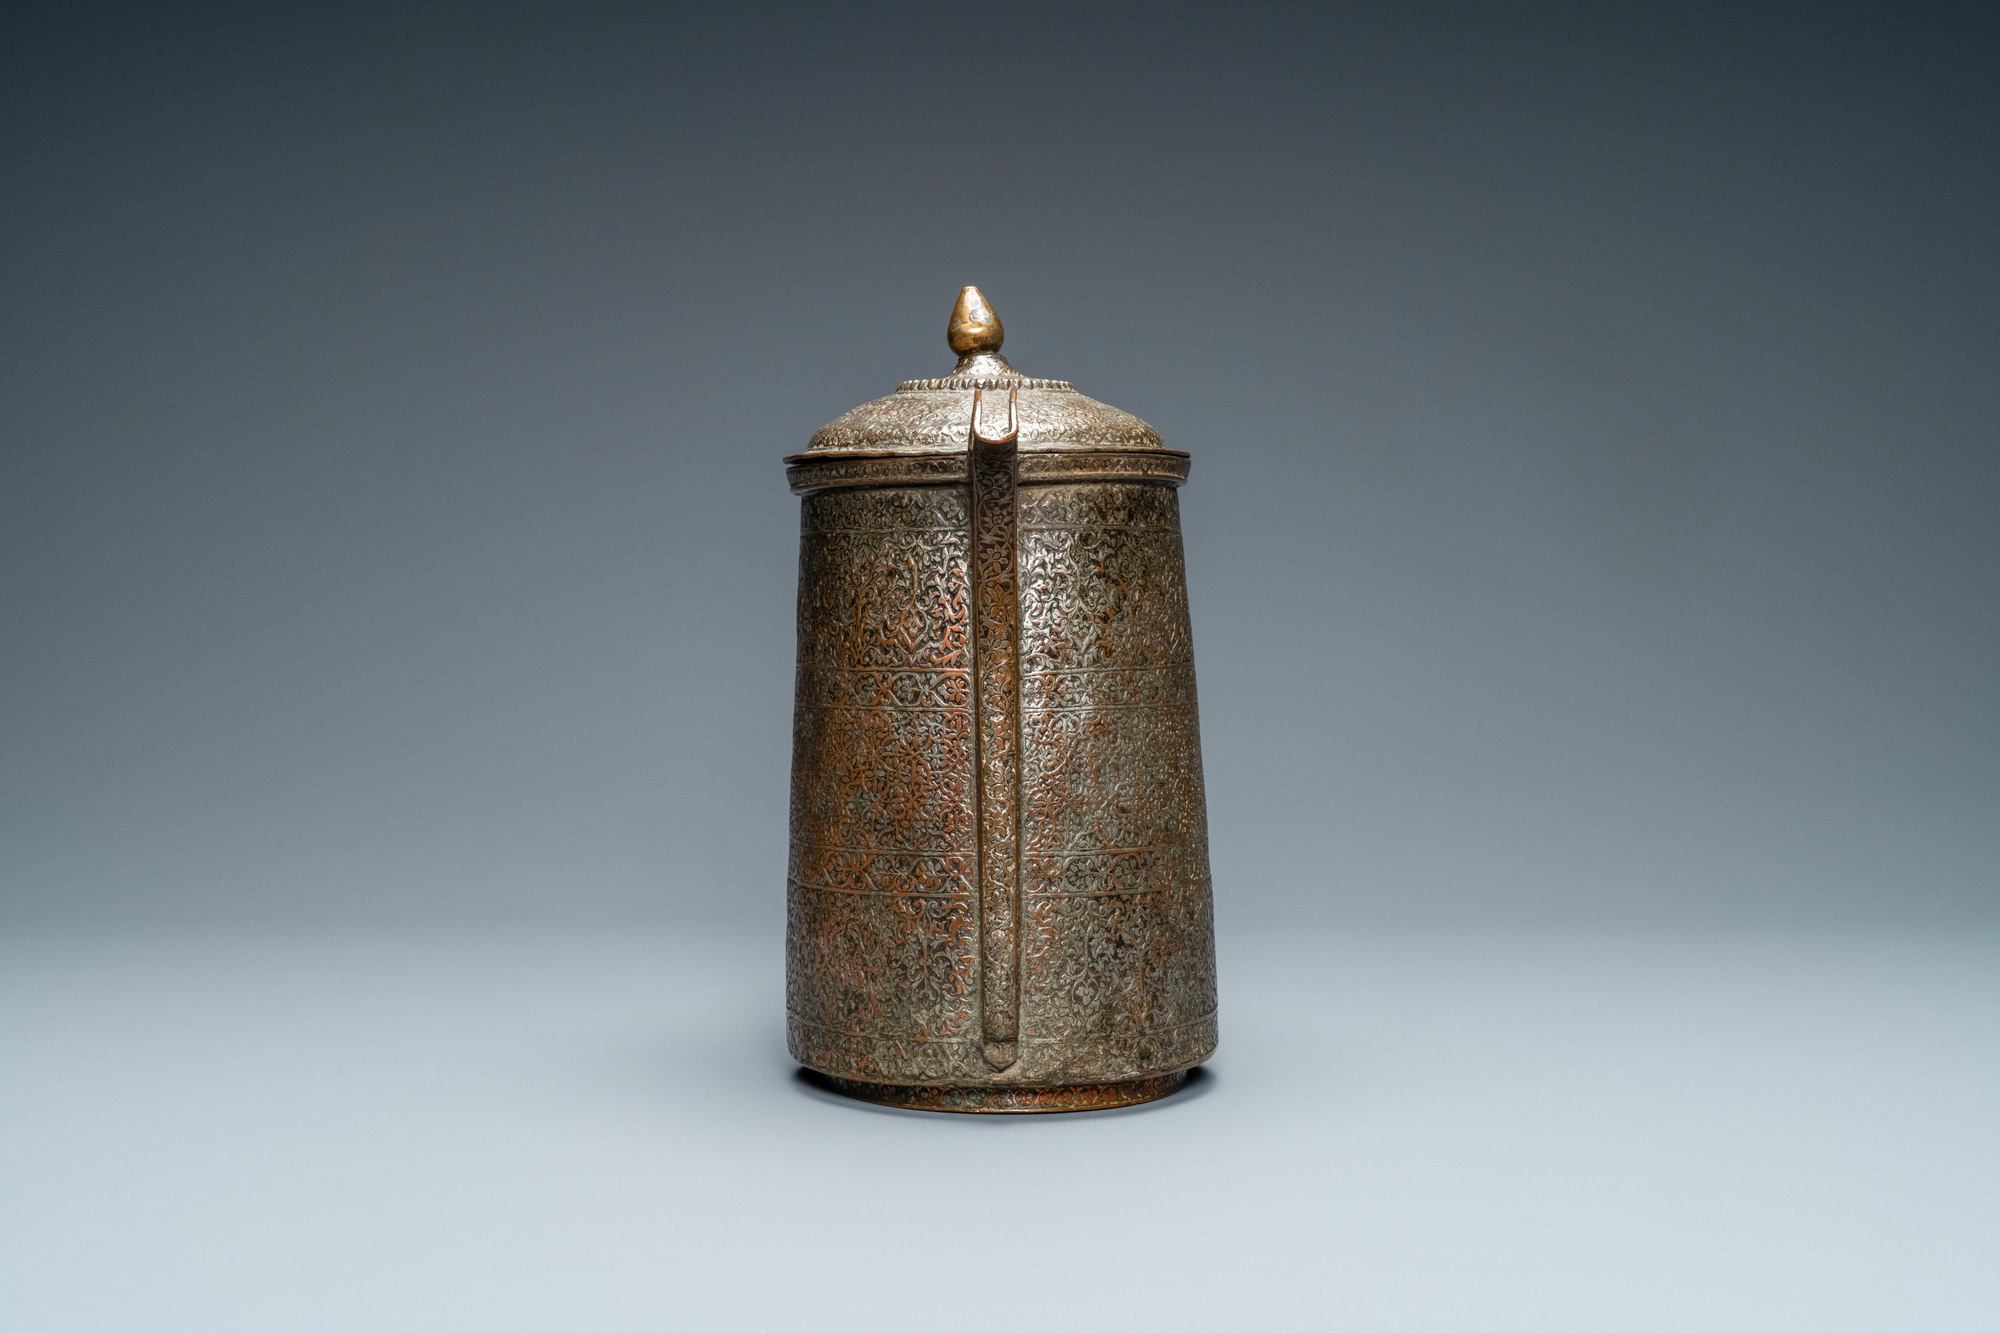 A Safavid parcel-gilt and tinned copper mug and cover, Persia, 17/18th C. - Image 4 of 7